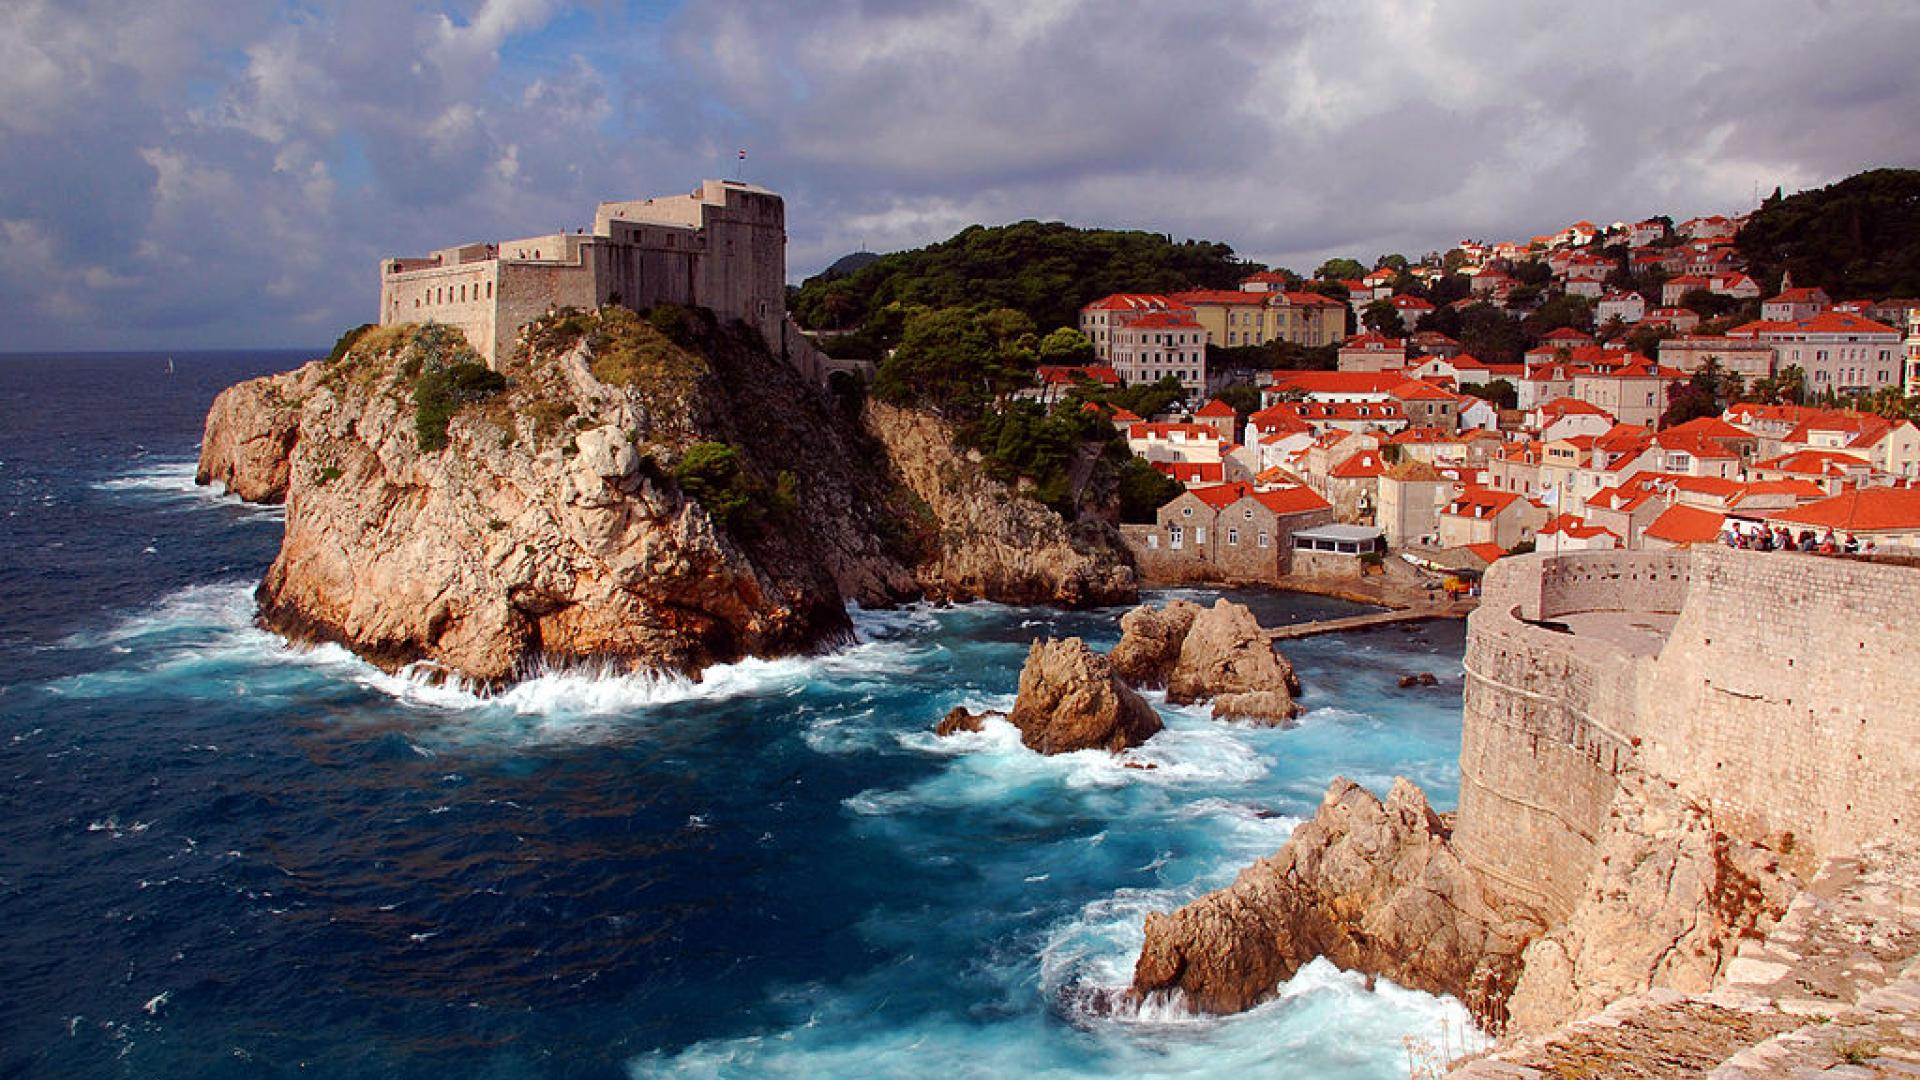 The Adriatic coastal city of Dubrovnik, Croatia